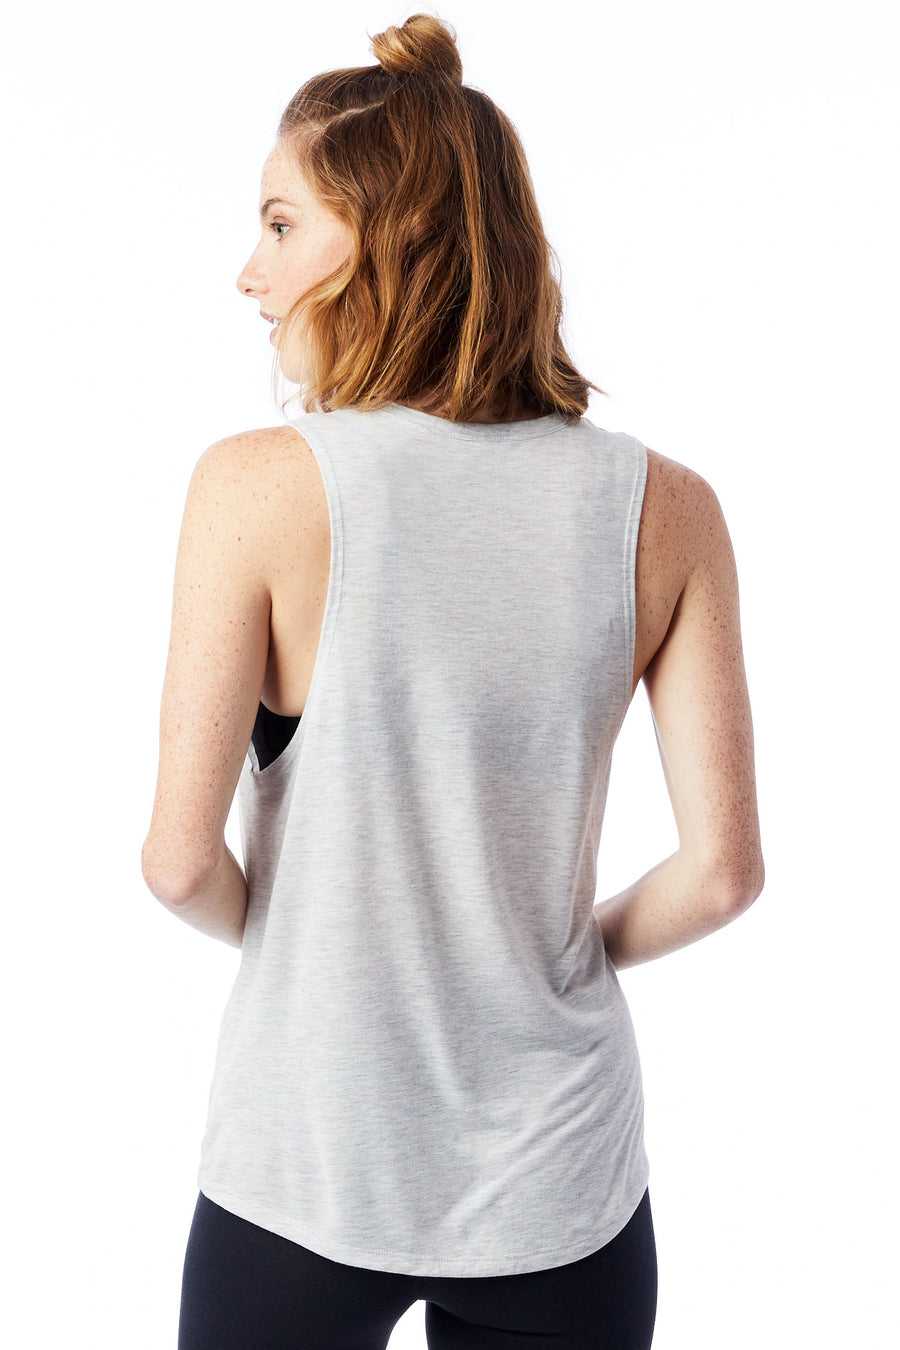 Slinky Muscle Tank - Oatmeal Heather - Pavilion